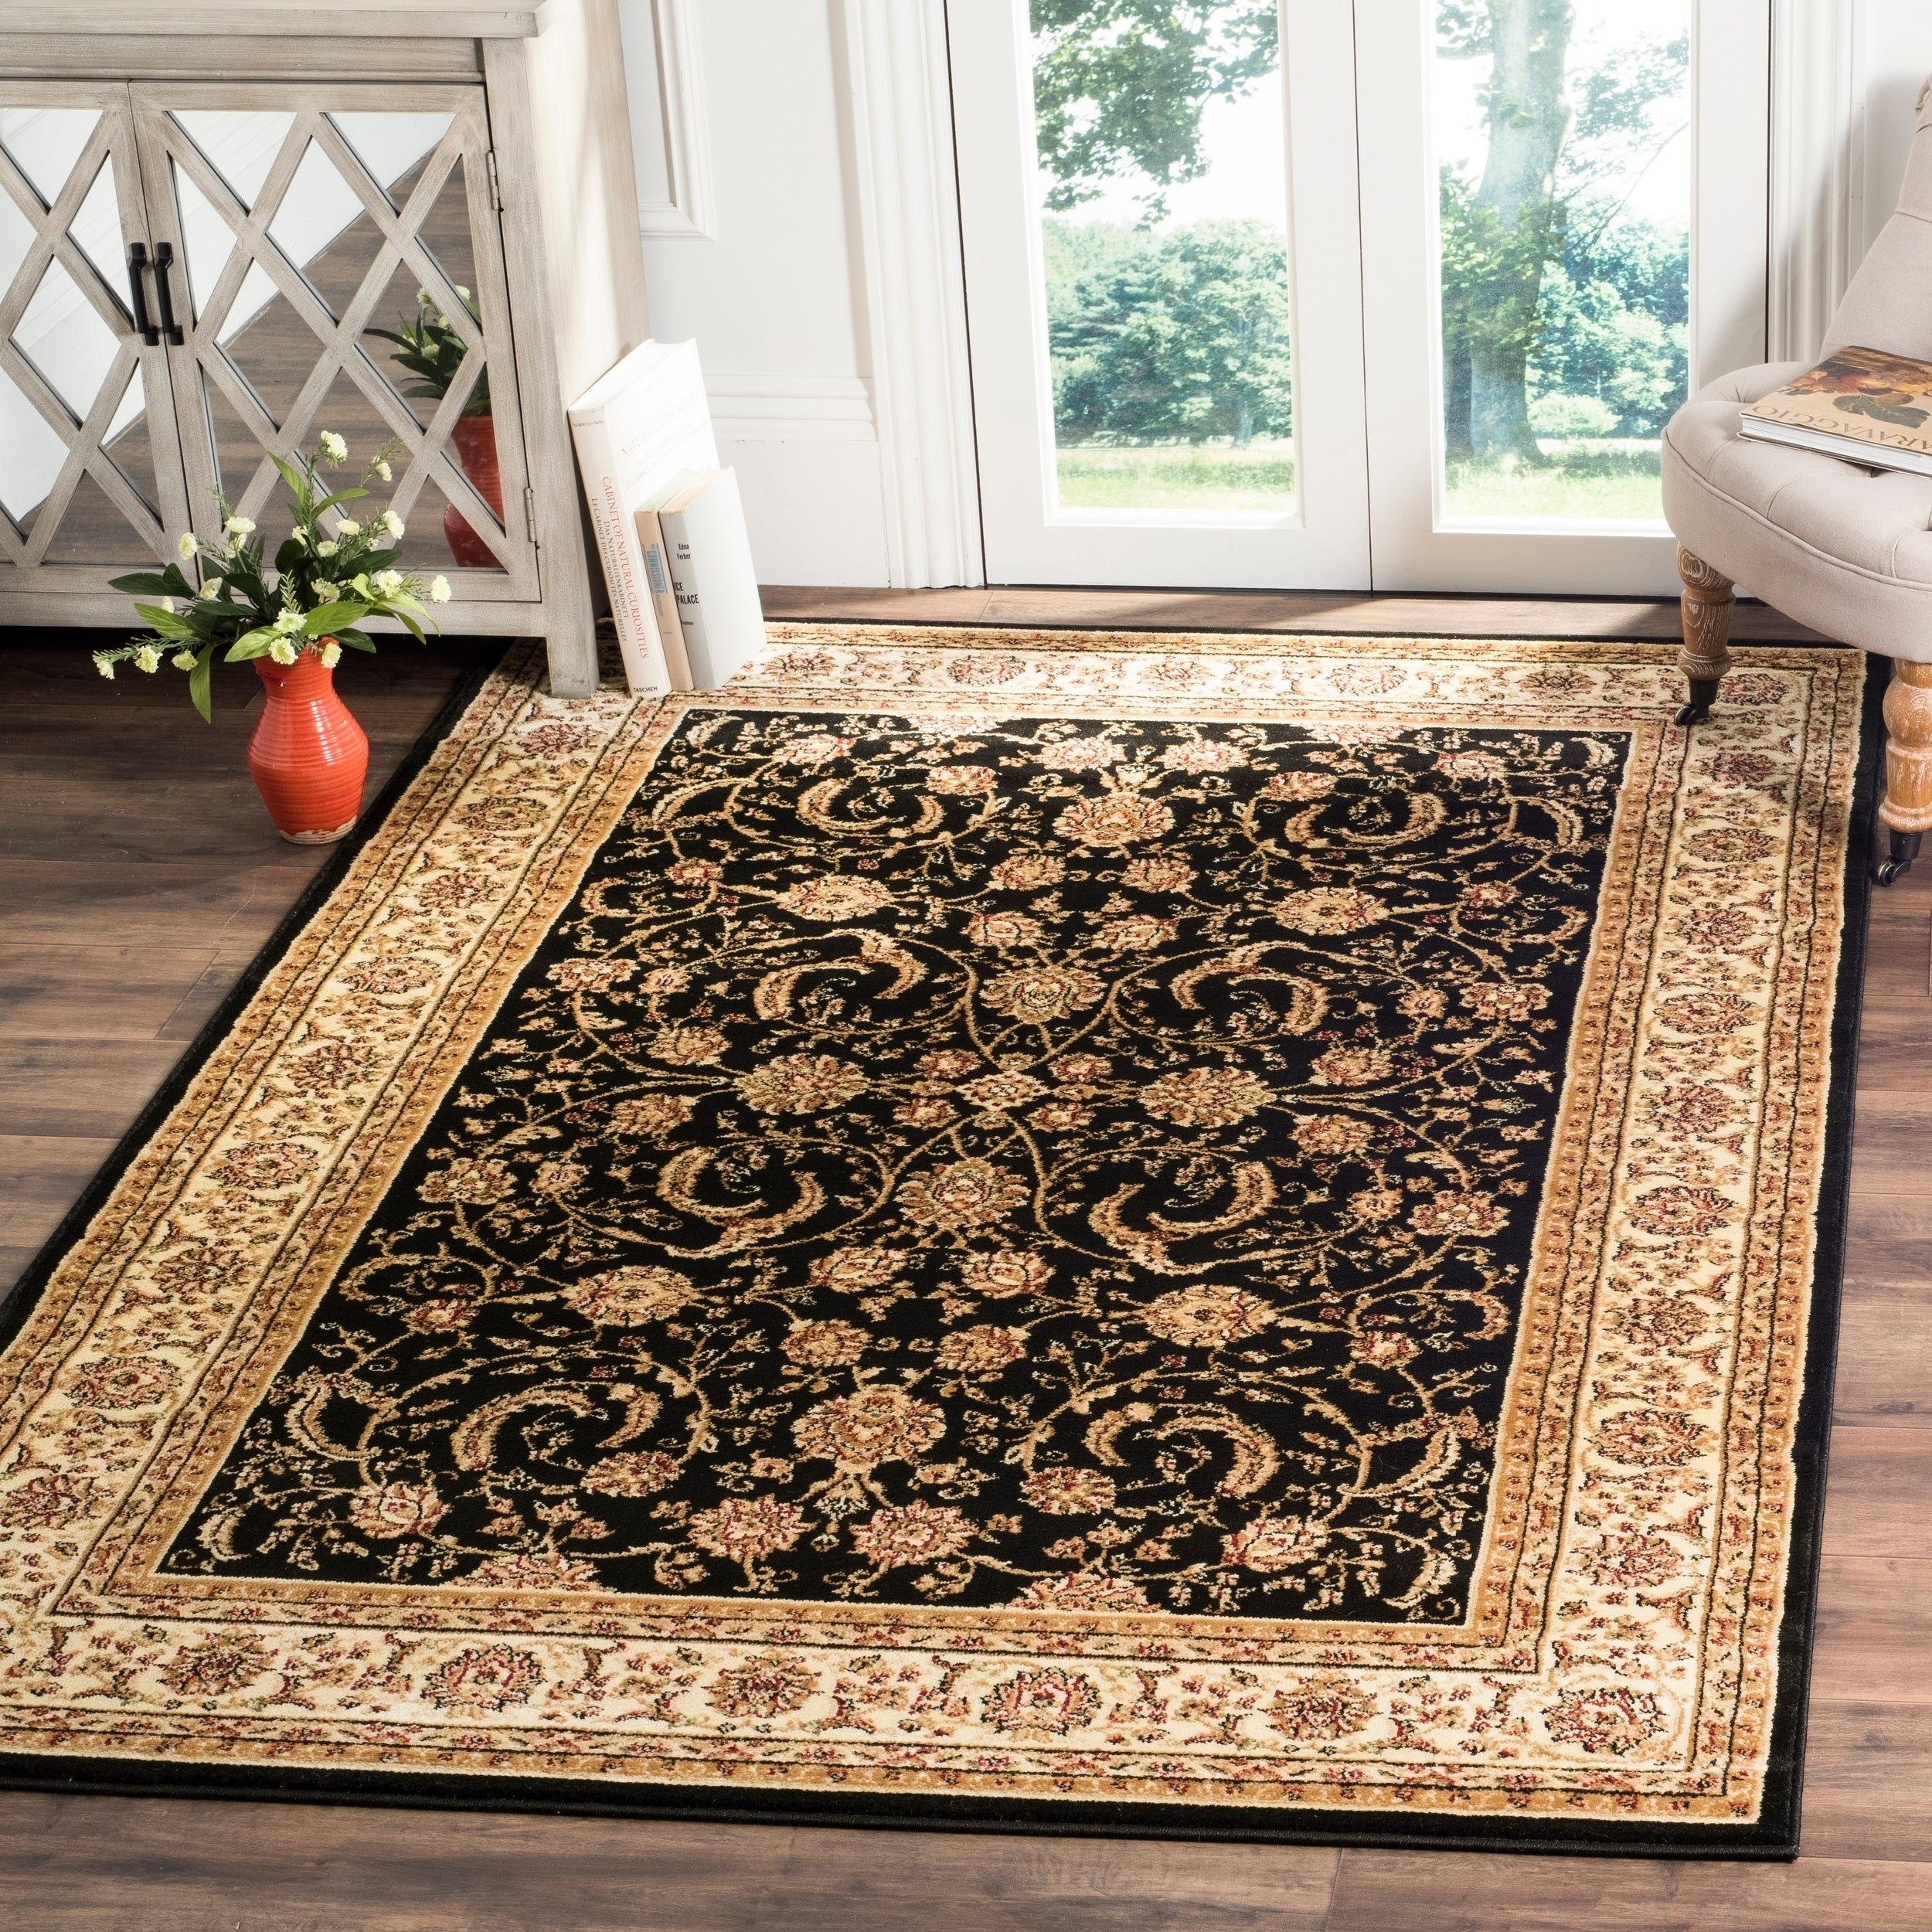 Oriental Rugs Out Of Style: Safavieh Lyndhurst Traditional Oriental Black/ Ivory Rug